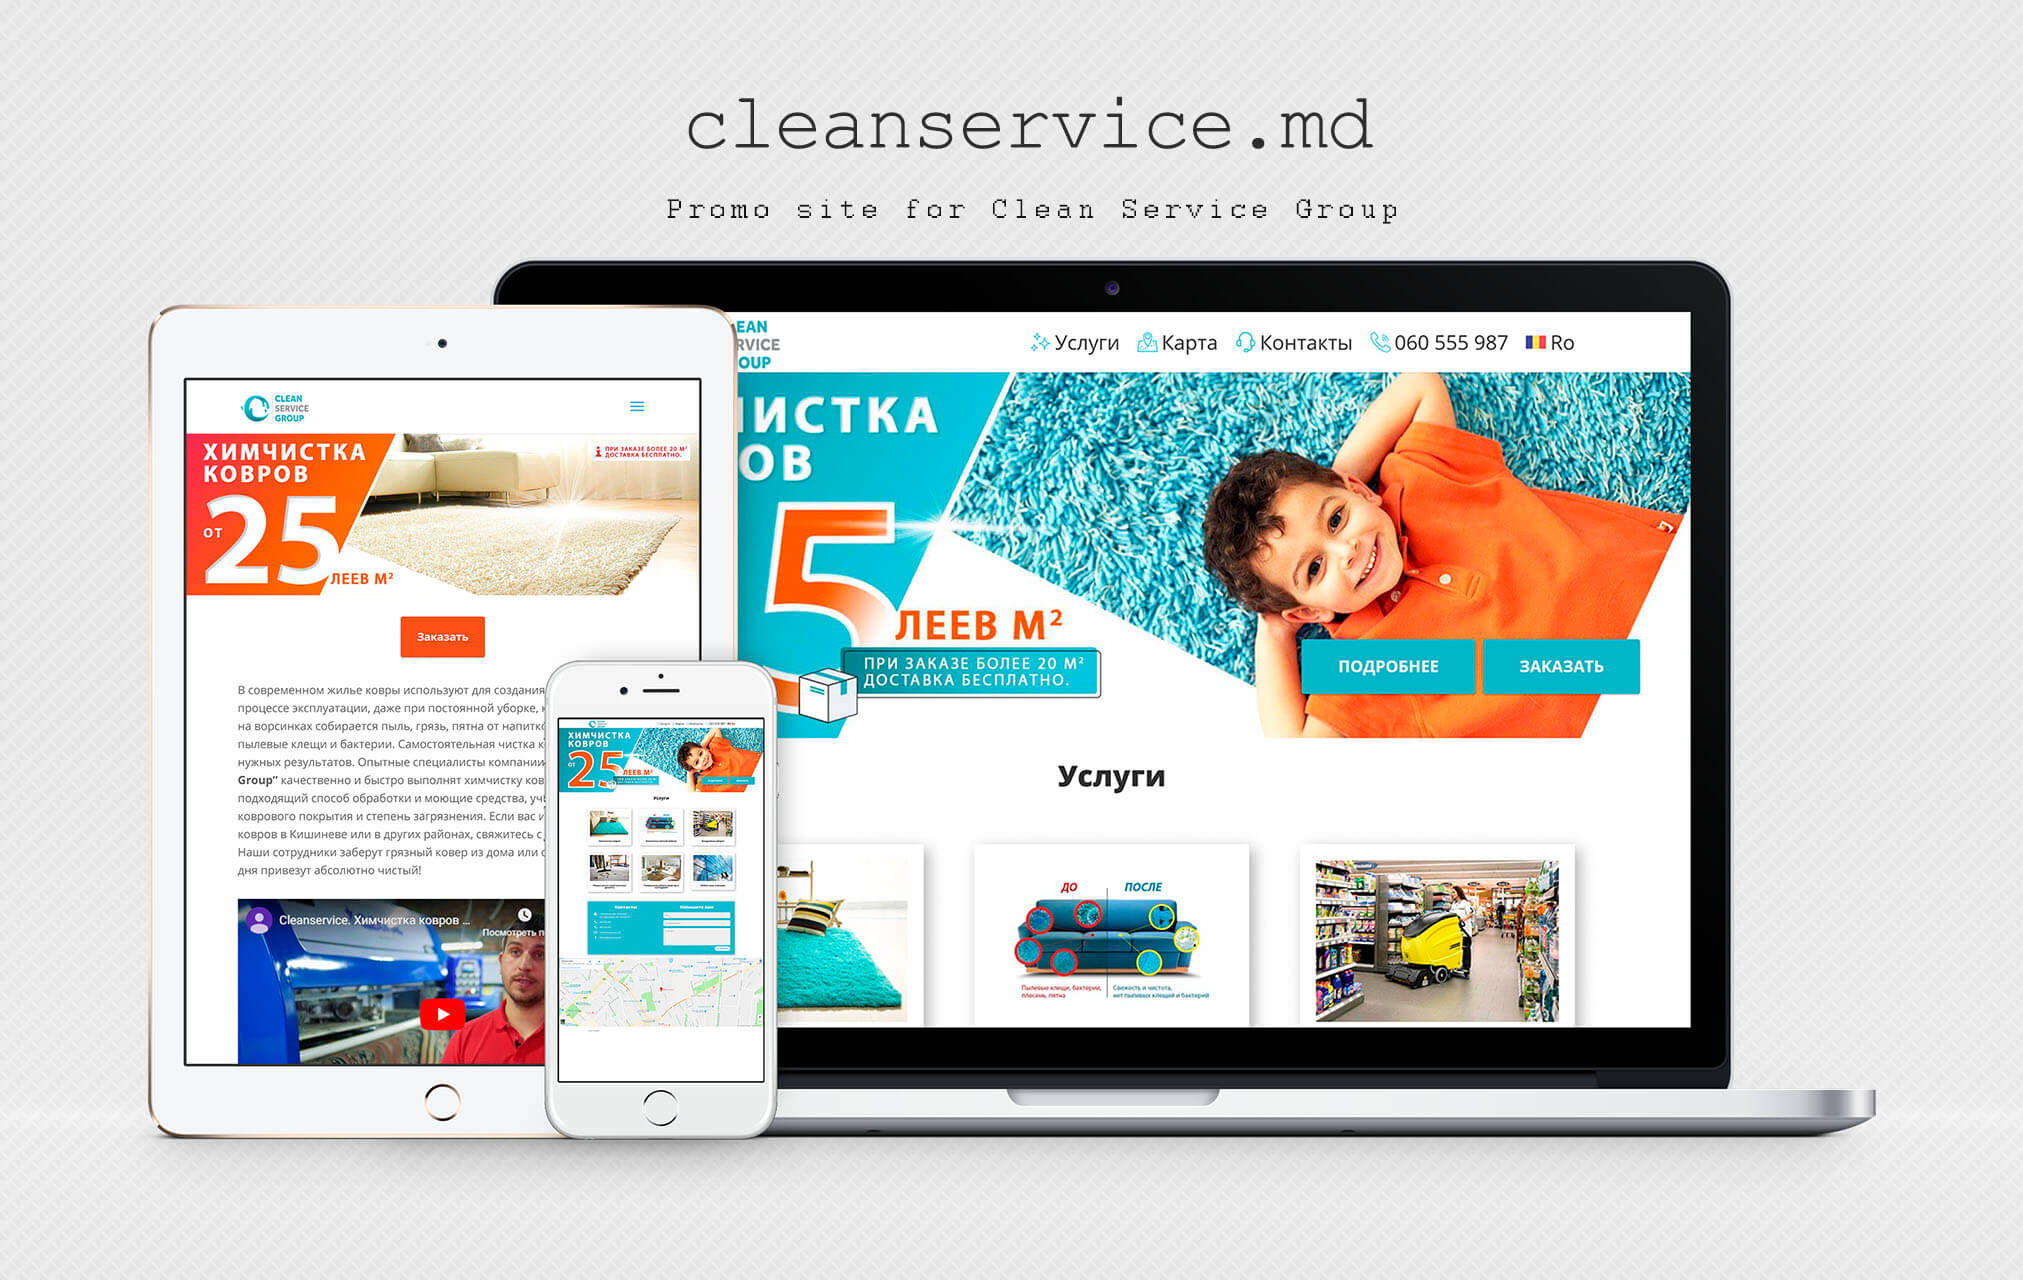 Website cleaning company - Clean Service Group